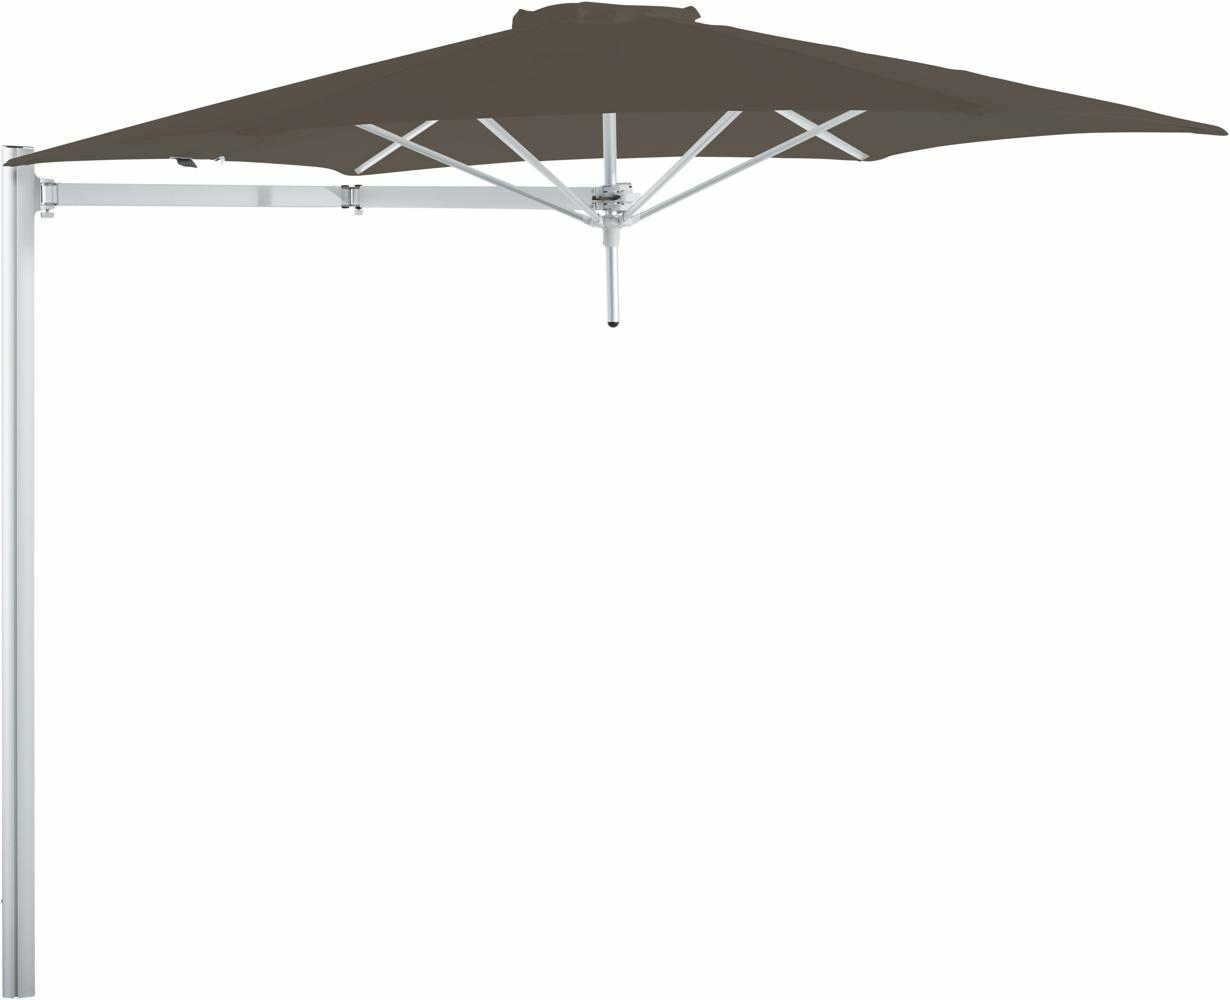 Paraflex cantilever umbrella round 3 m with Taupe fabric and a Neo arm